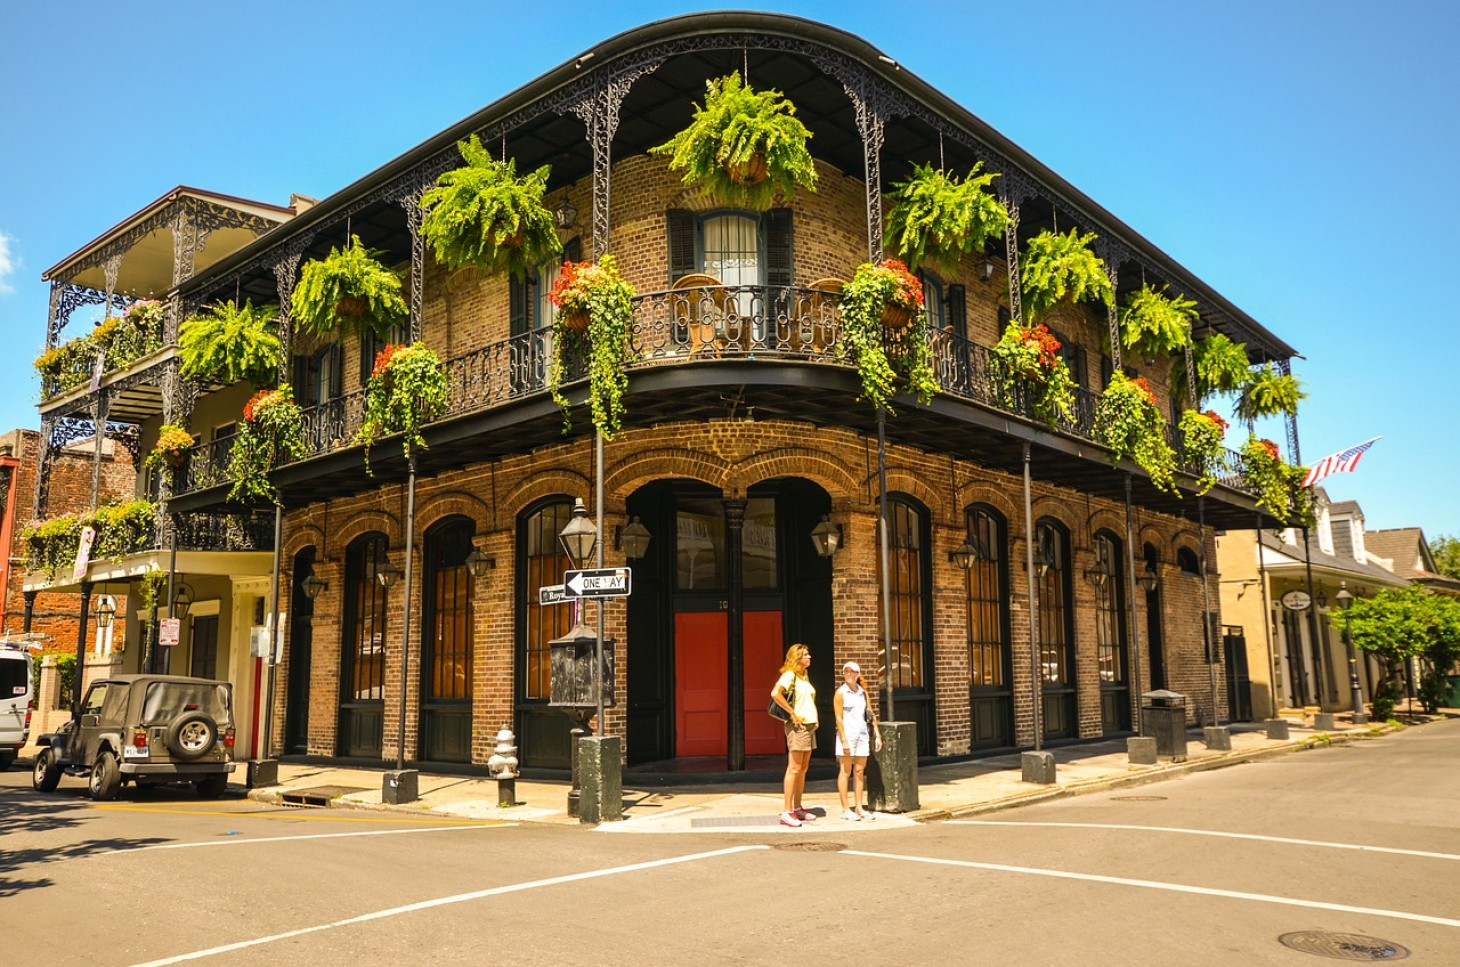 A shot of the famous building in New Orleans' French Quarter.